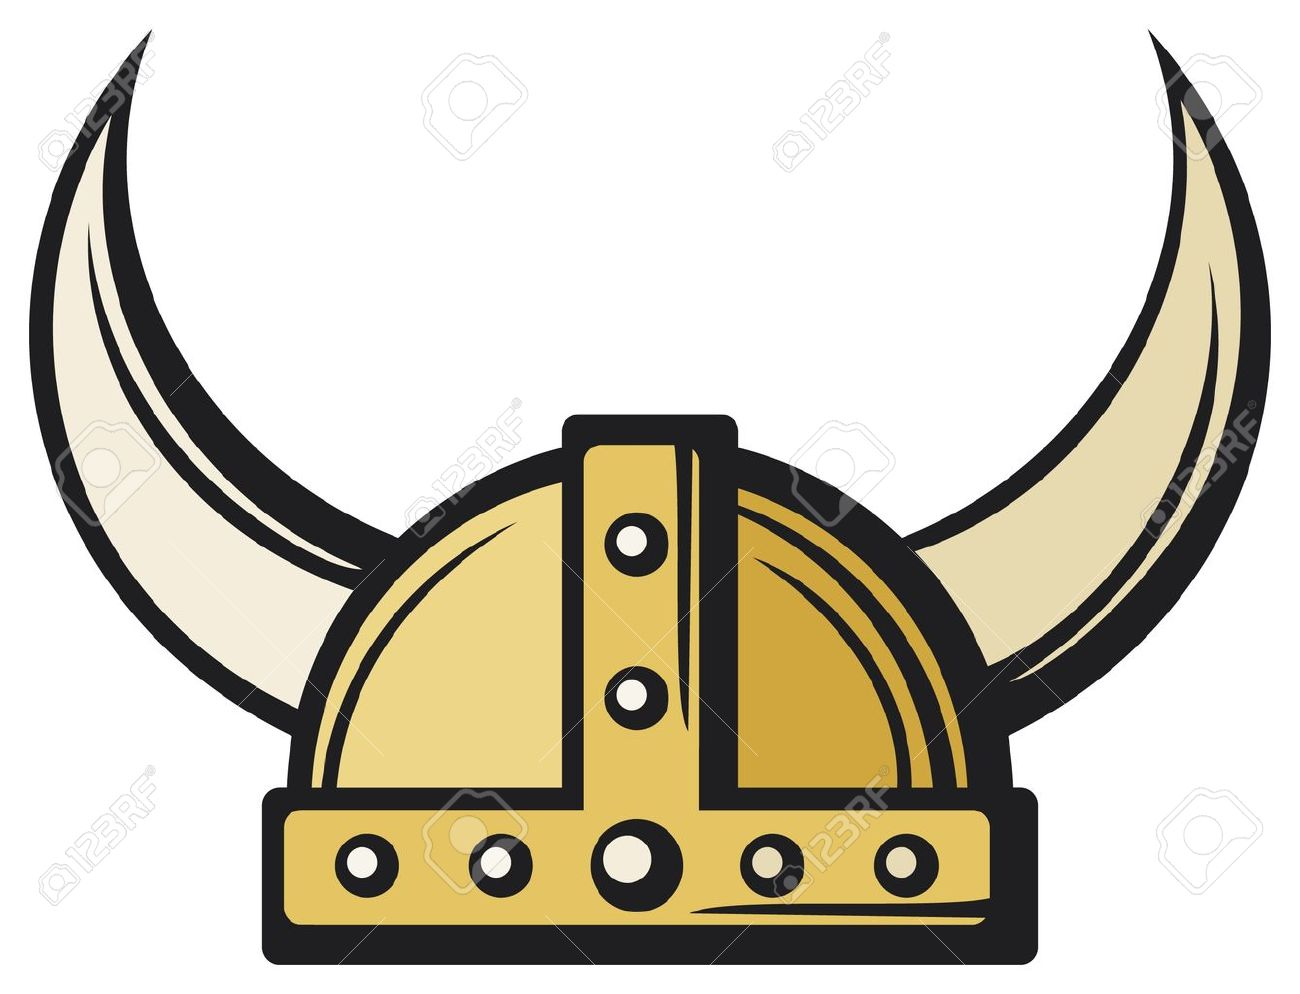 viking helmet royalty free cliparts vectors and stock illustration rh 123rf com viking helmet clip art black and white minnesota viking helmet clipart